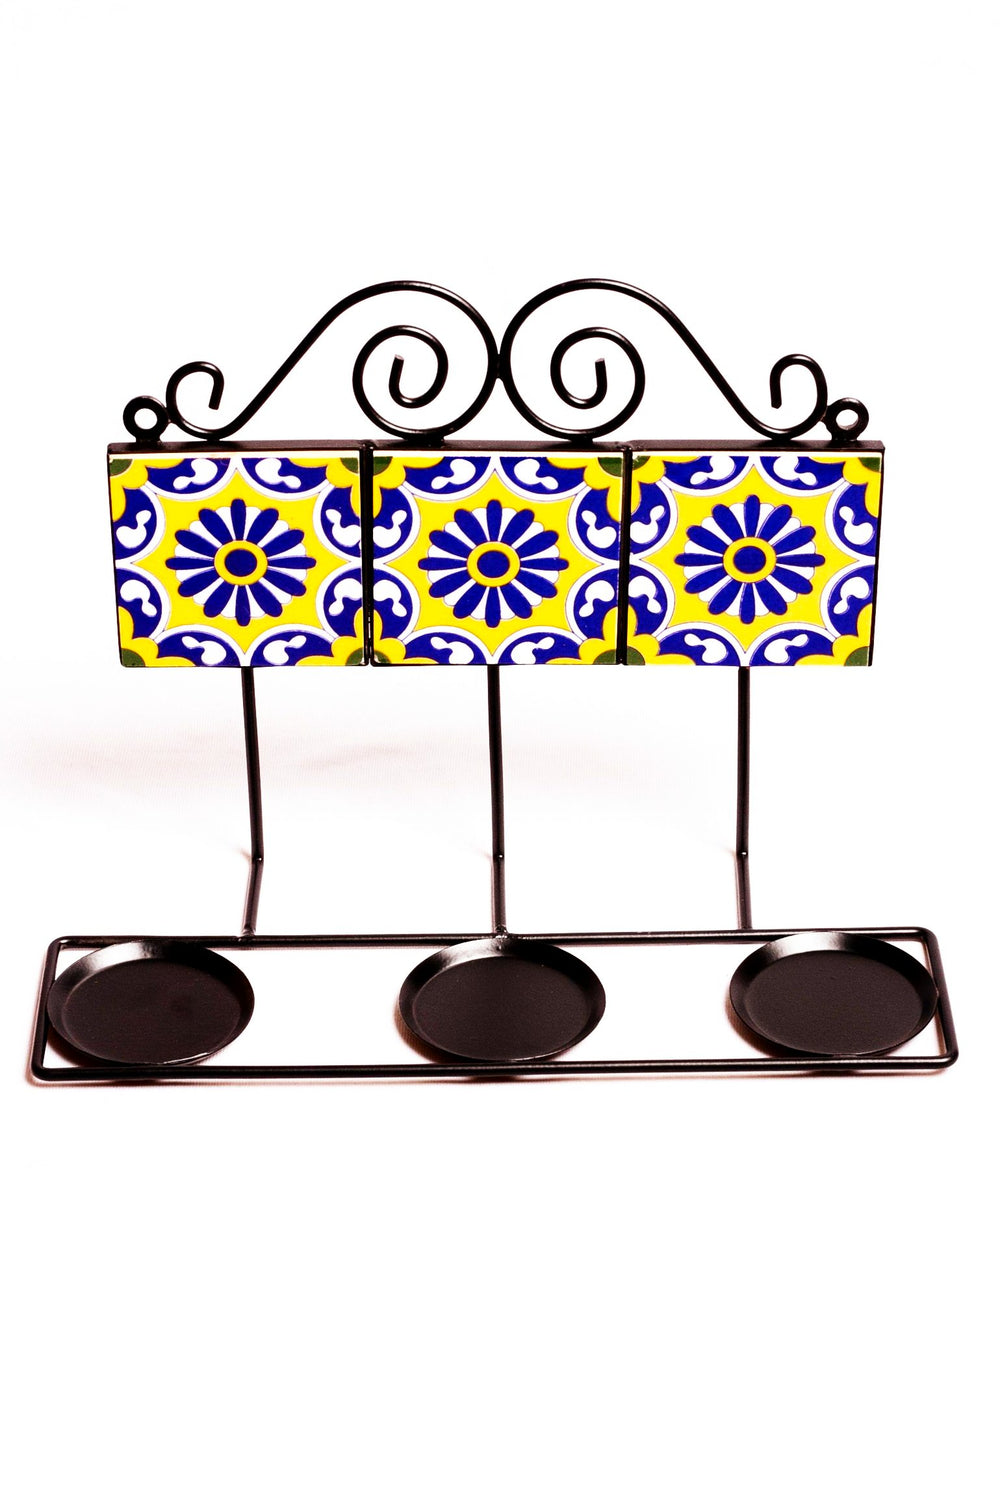 Three ceramic tiled square wall T light holder in yellow with blue and white floral motif